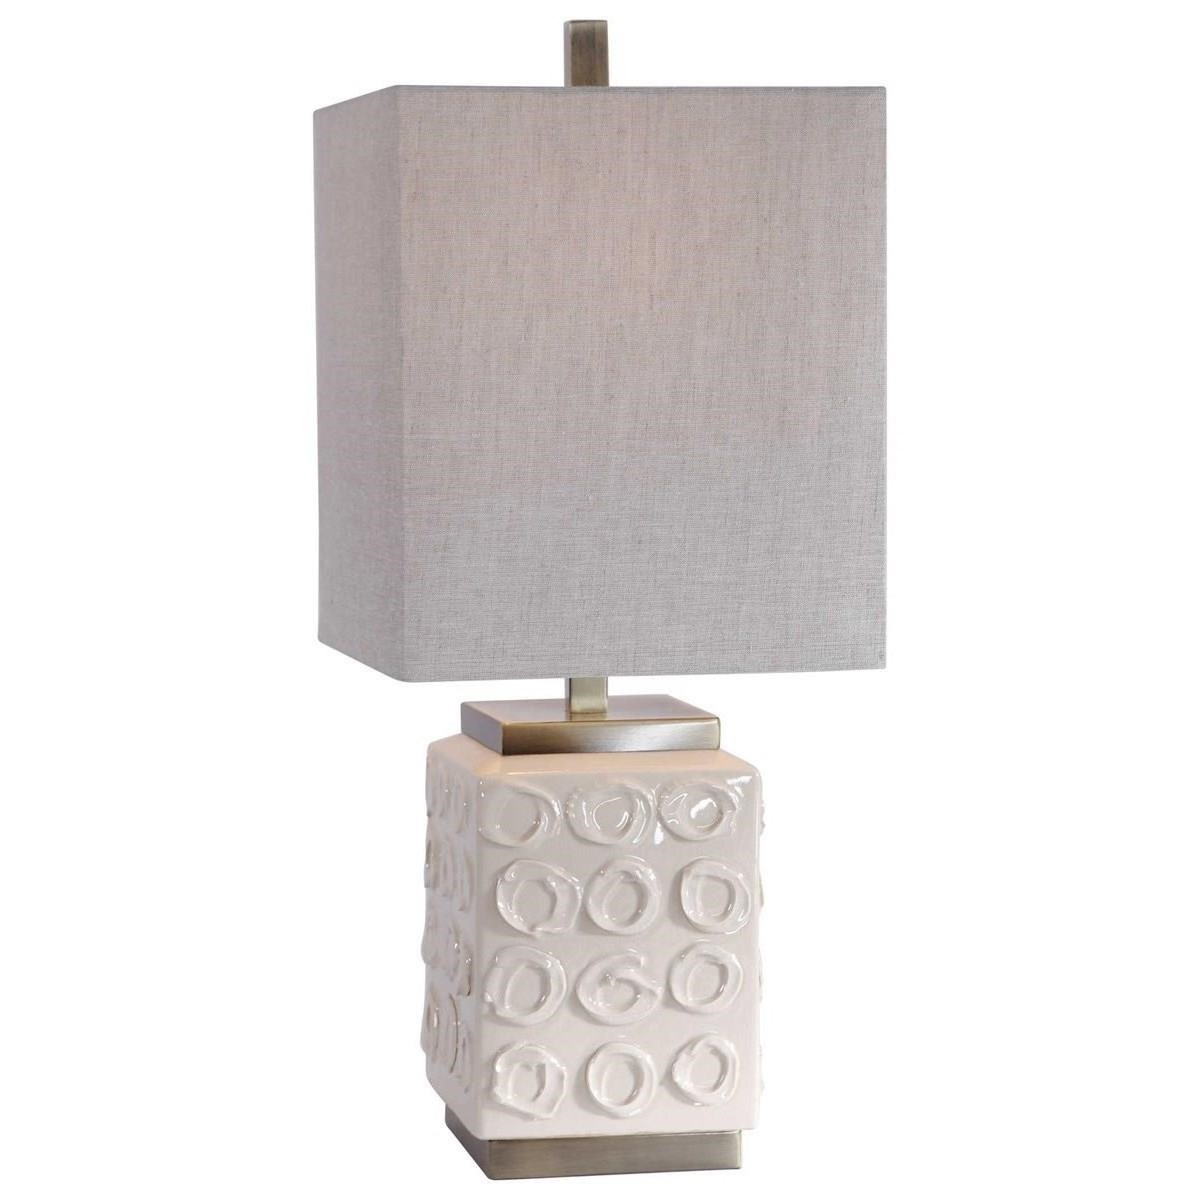 Accent Lamps Emeline White Accent Lamp by Uttermost at O'Dunk & O'Bright Furniture